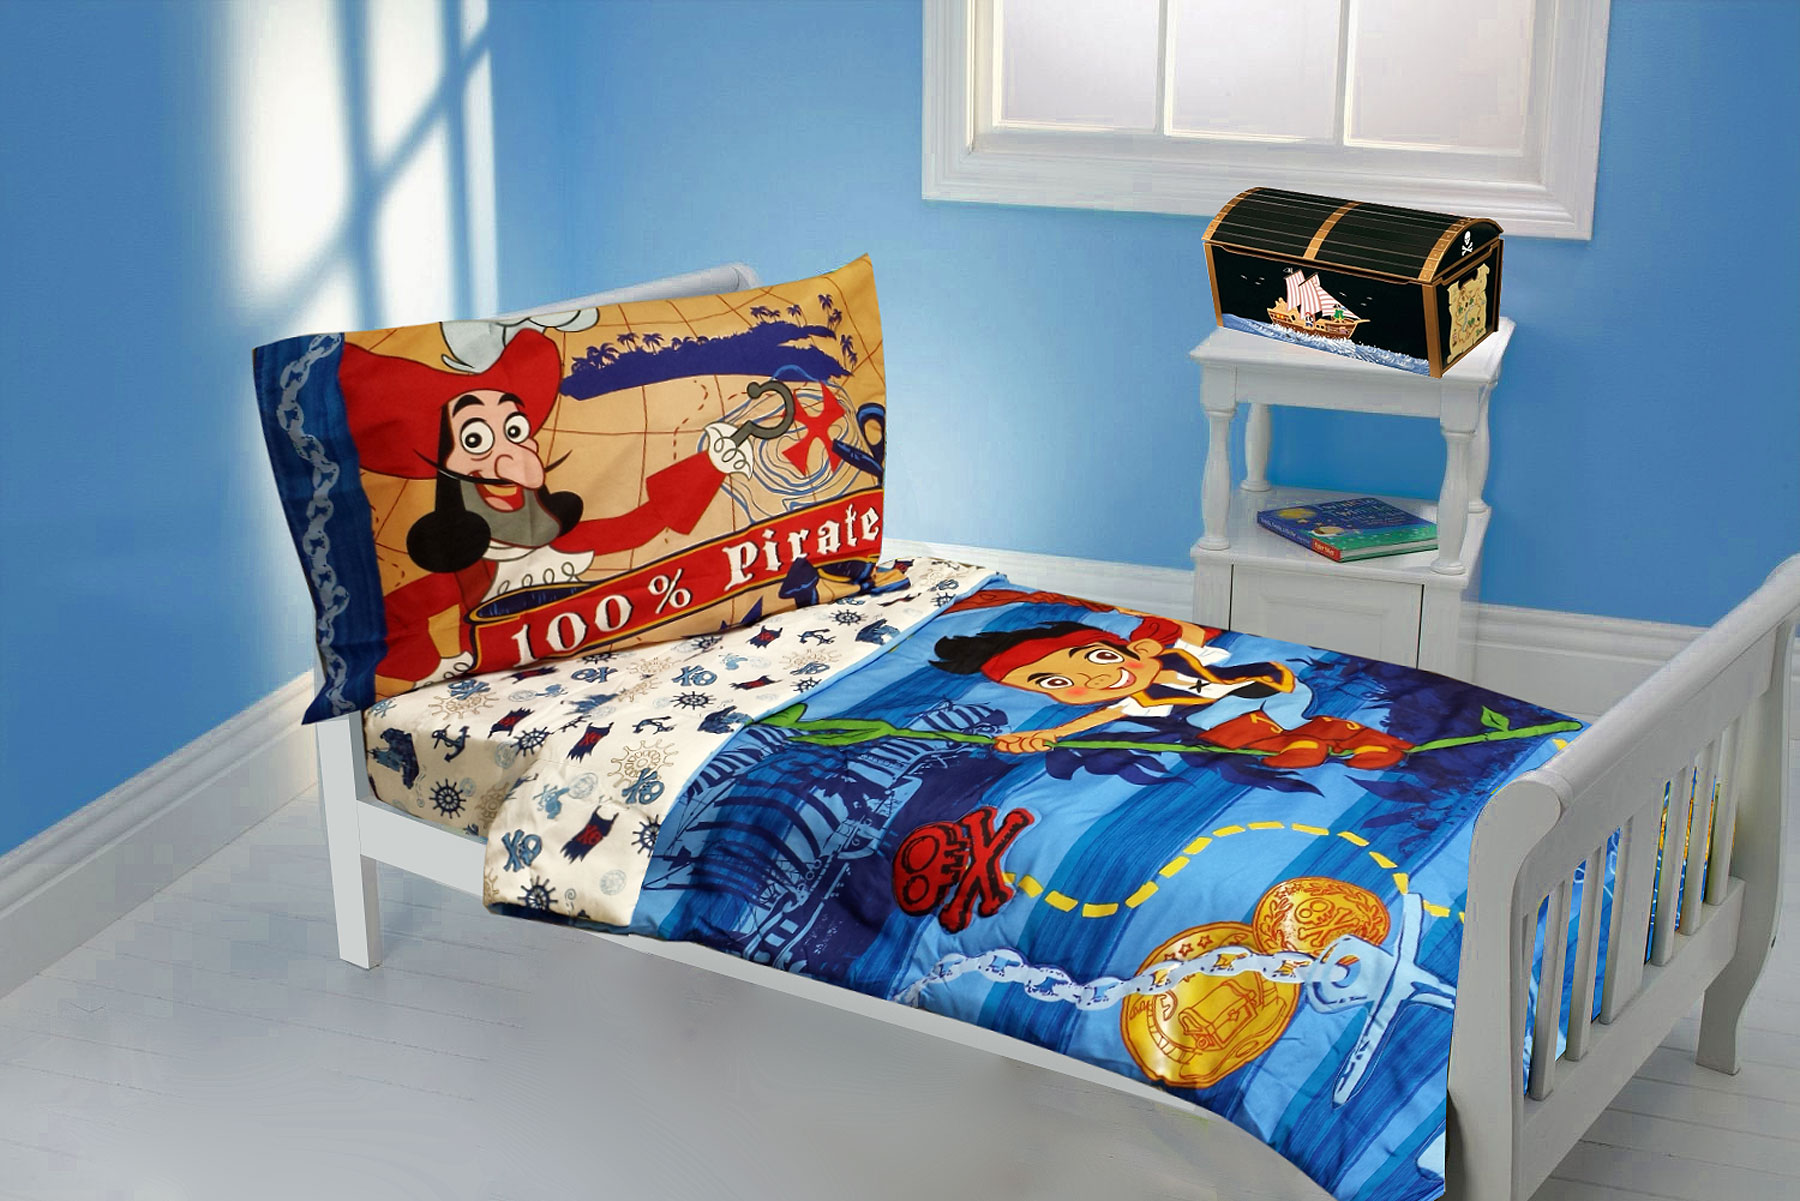 Pirate bedding 28 images pirate bedding 28 images jake for Jake quilted bedding